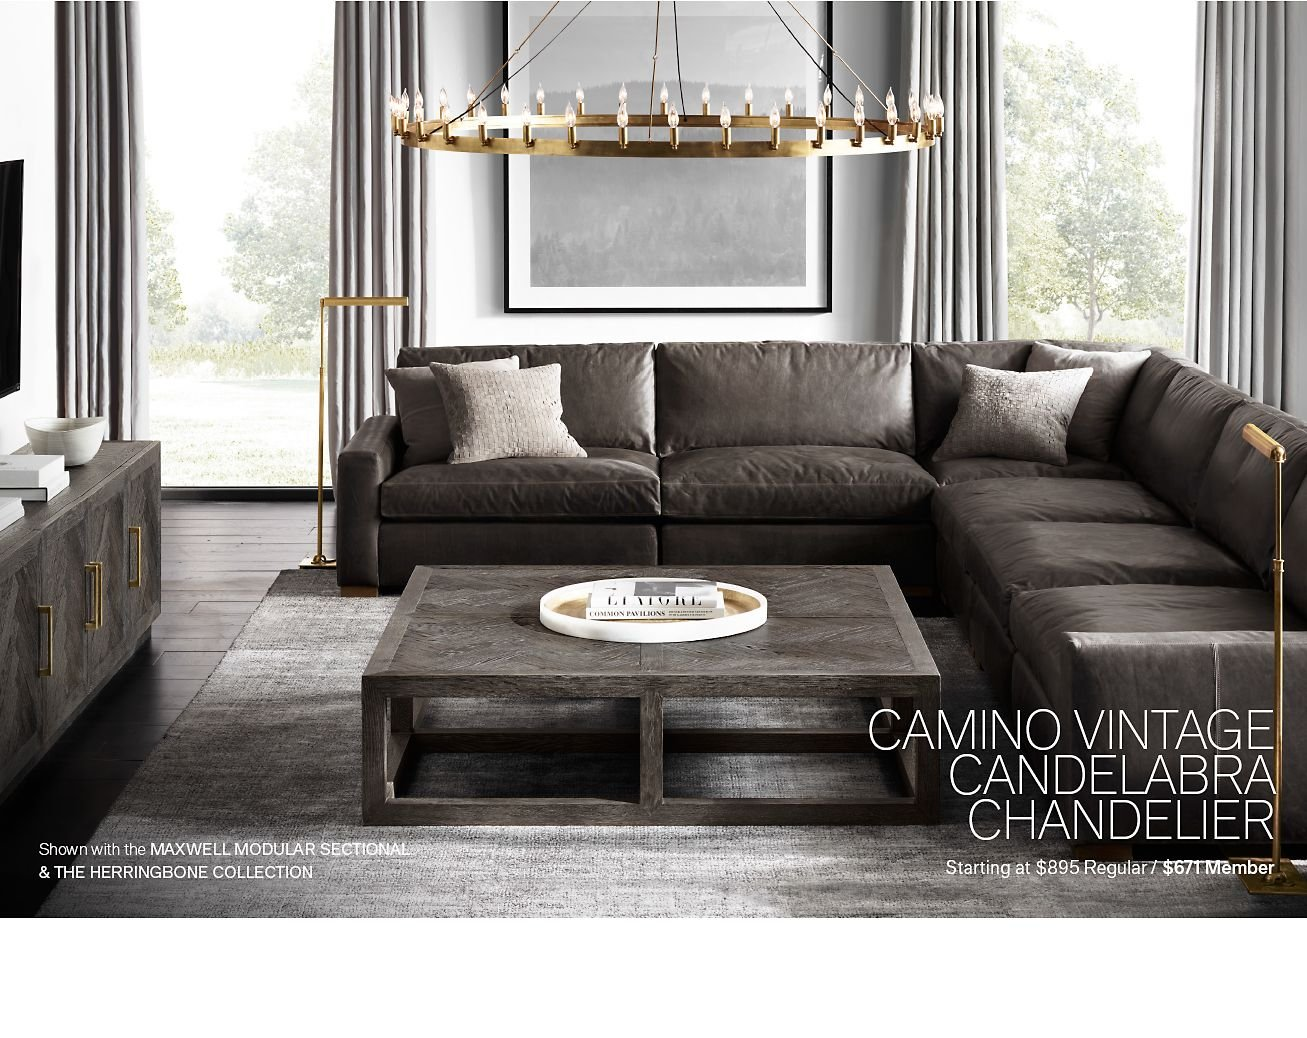 Restoration hardware iconic modern lighting by robert sonneman limited exclusions apply visit rhmodern for details arubaitofo Images